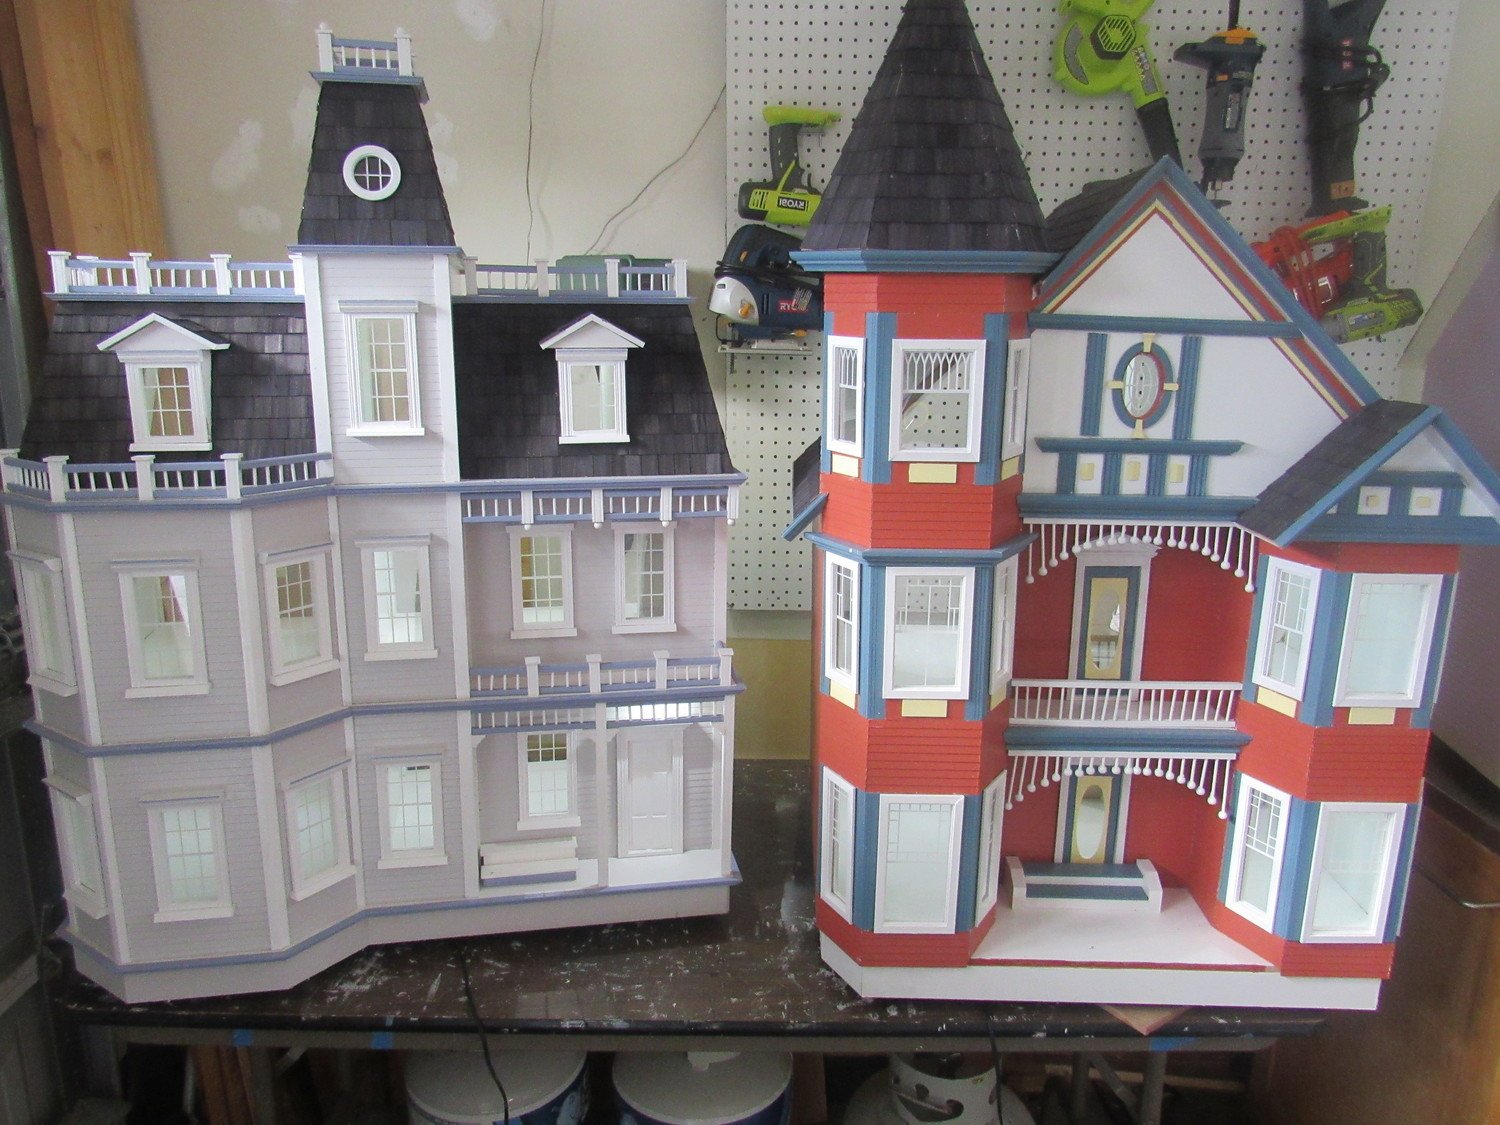 Built by Nocatee resident Brendan Hoffman, these two Victorian-style doll houses will be donated this December to children in hospice care in the Community PedsCare program at Community Hospice & Palliative Care.